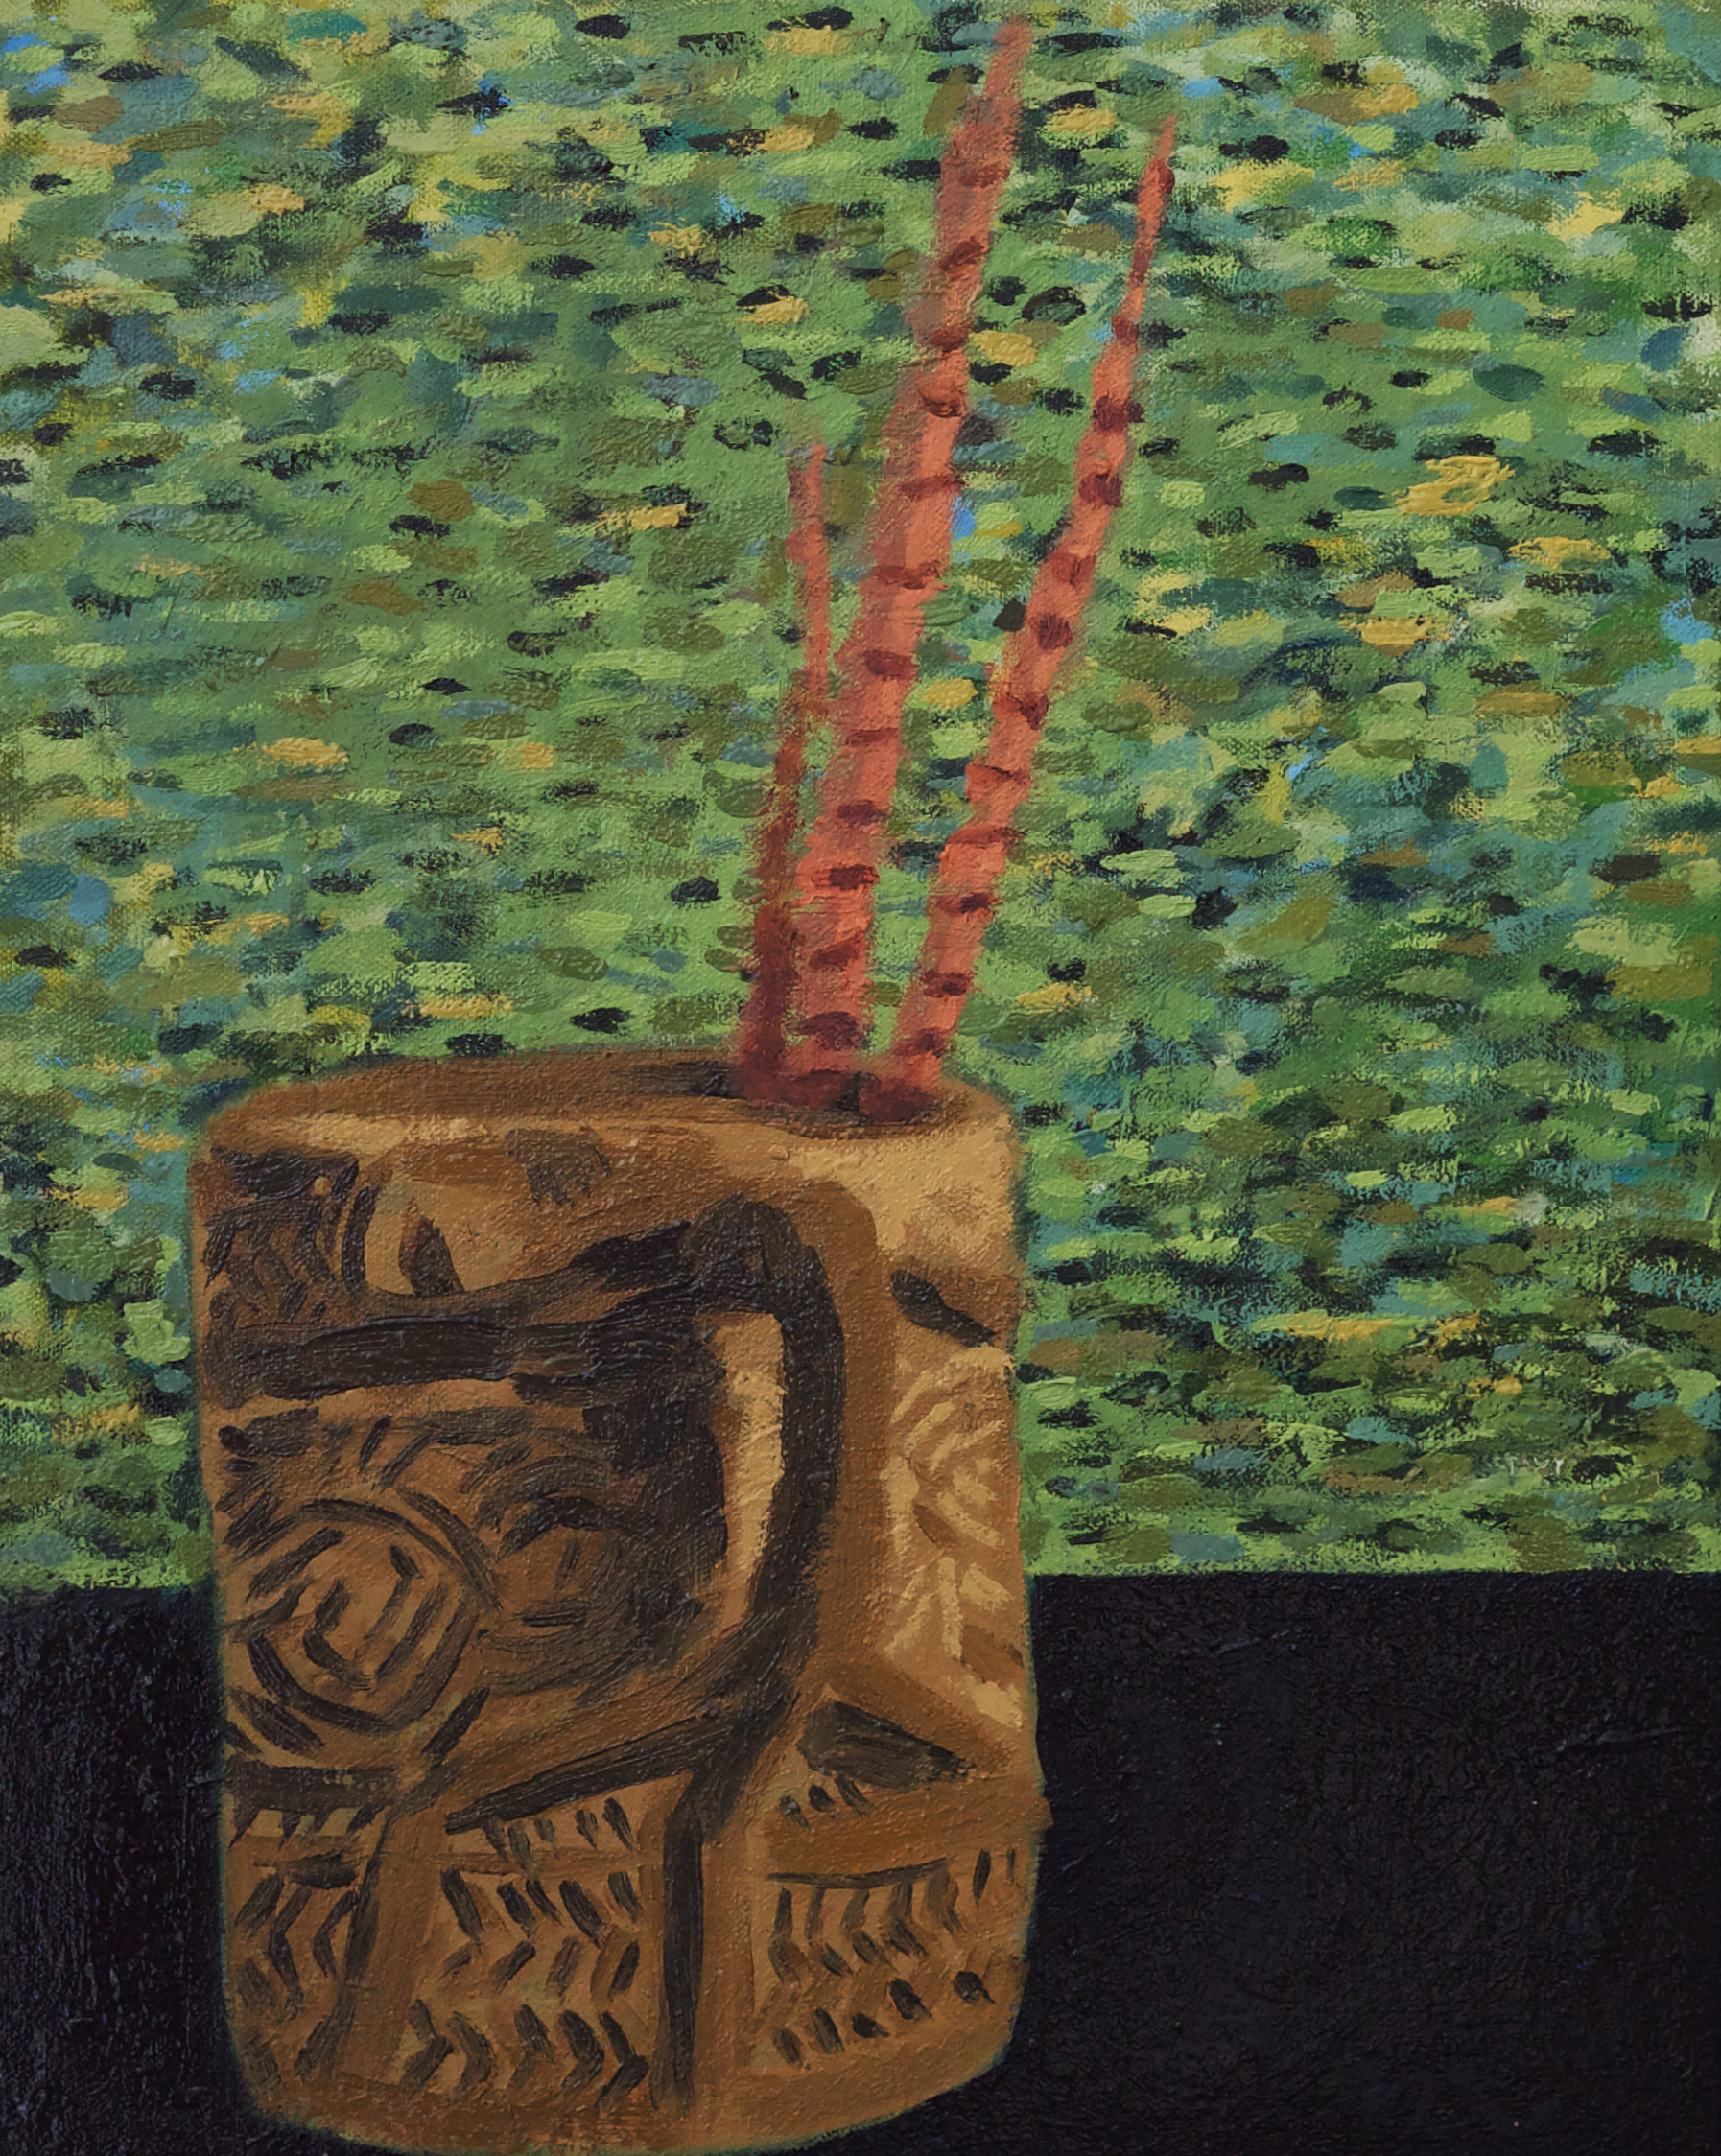 Oceanic Jug and Pheasant Feathers oil on canvas